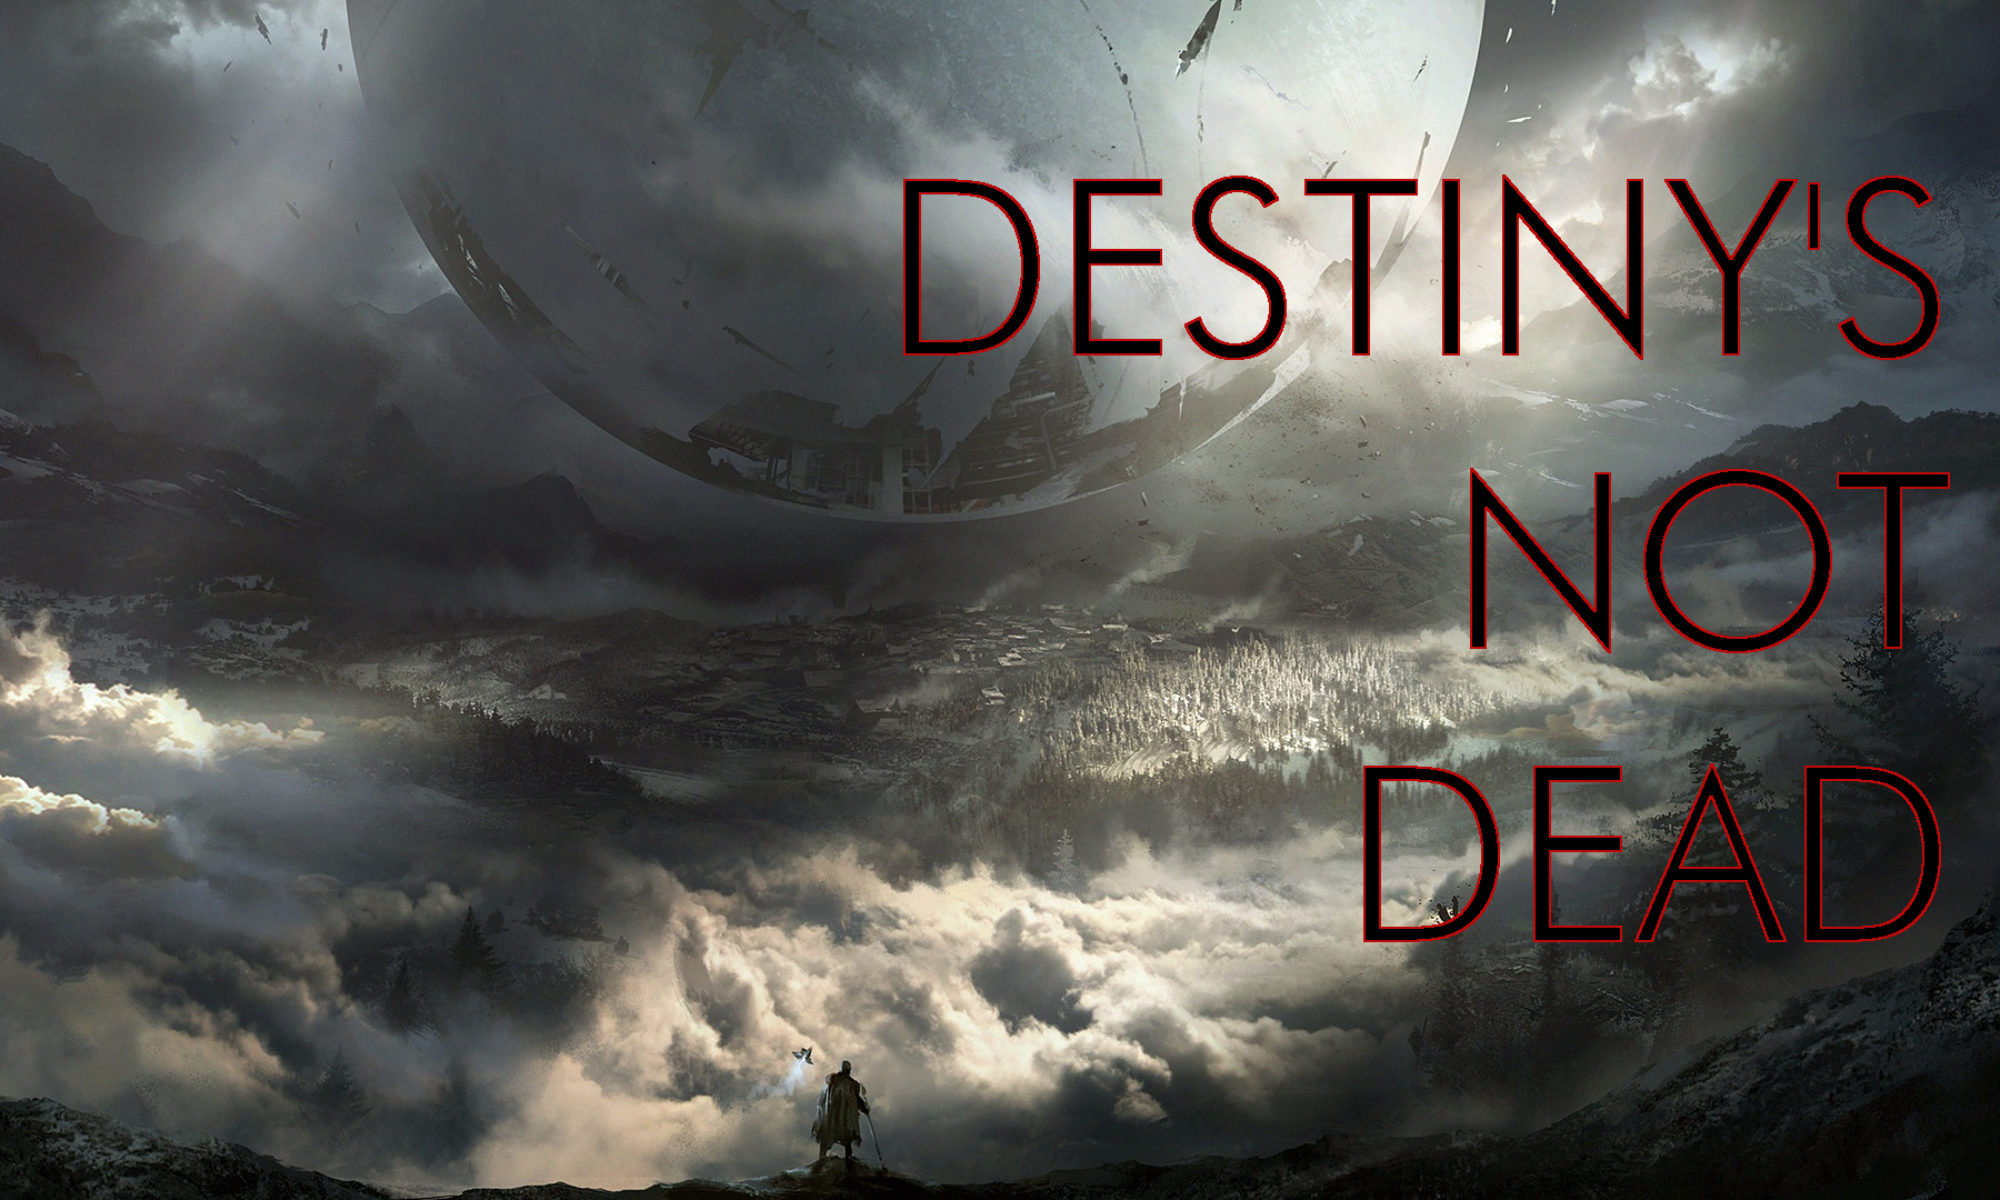 Destiny's Not Dead